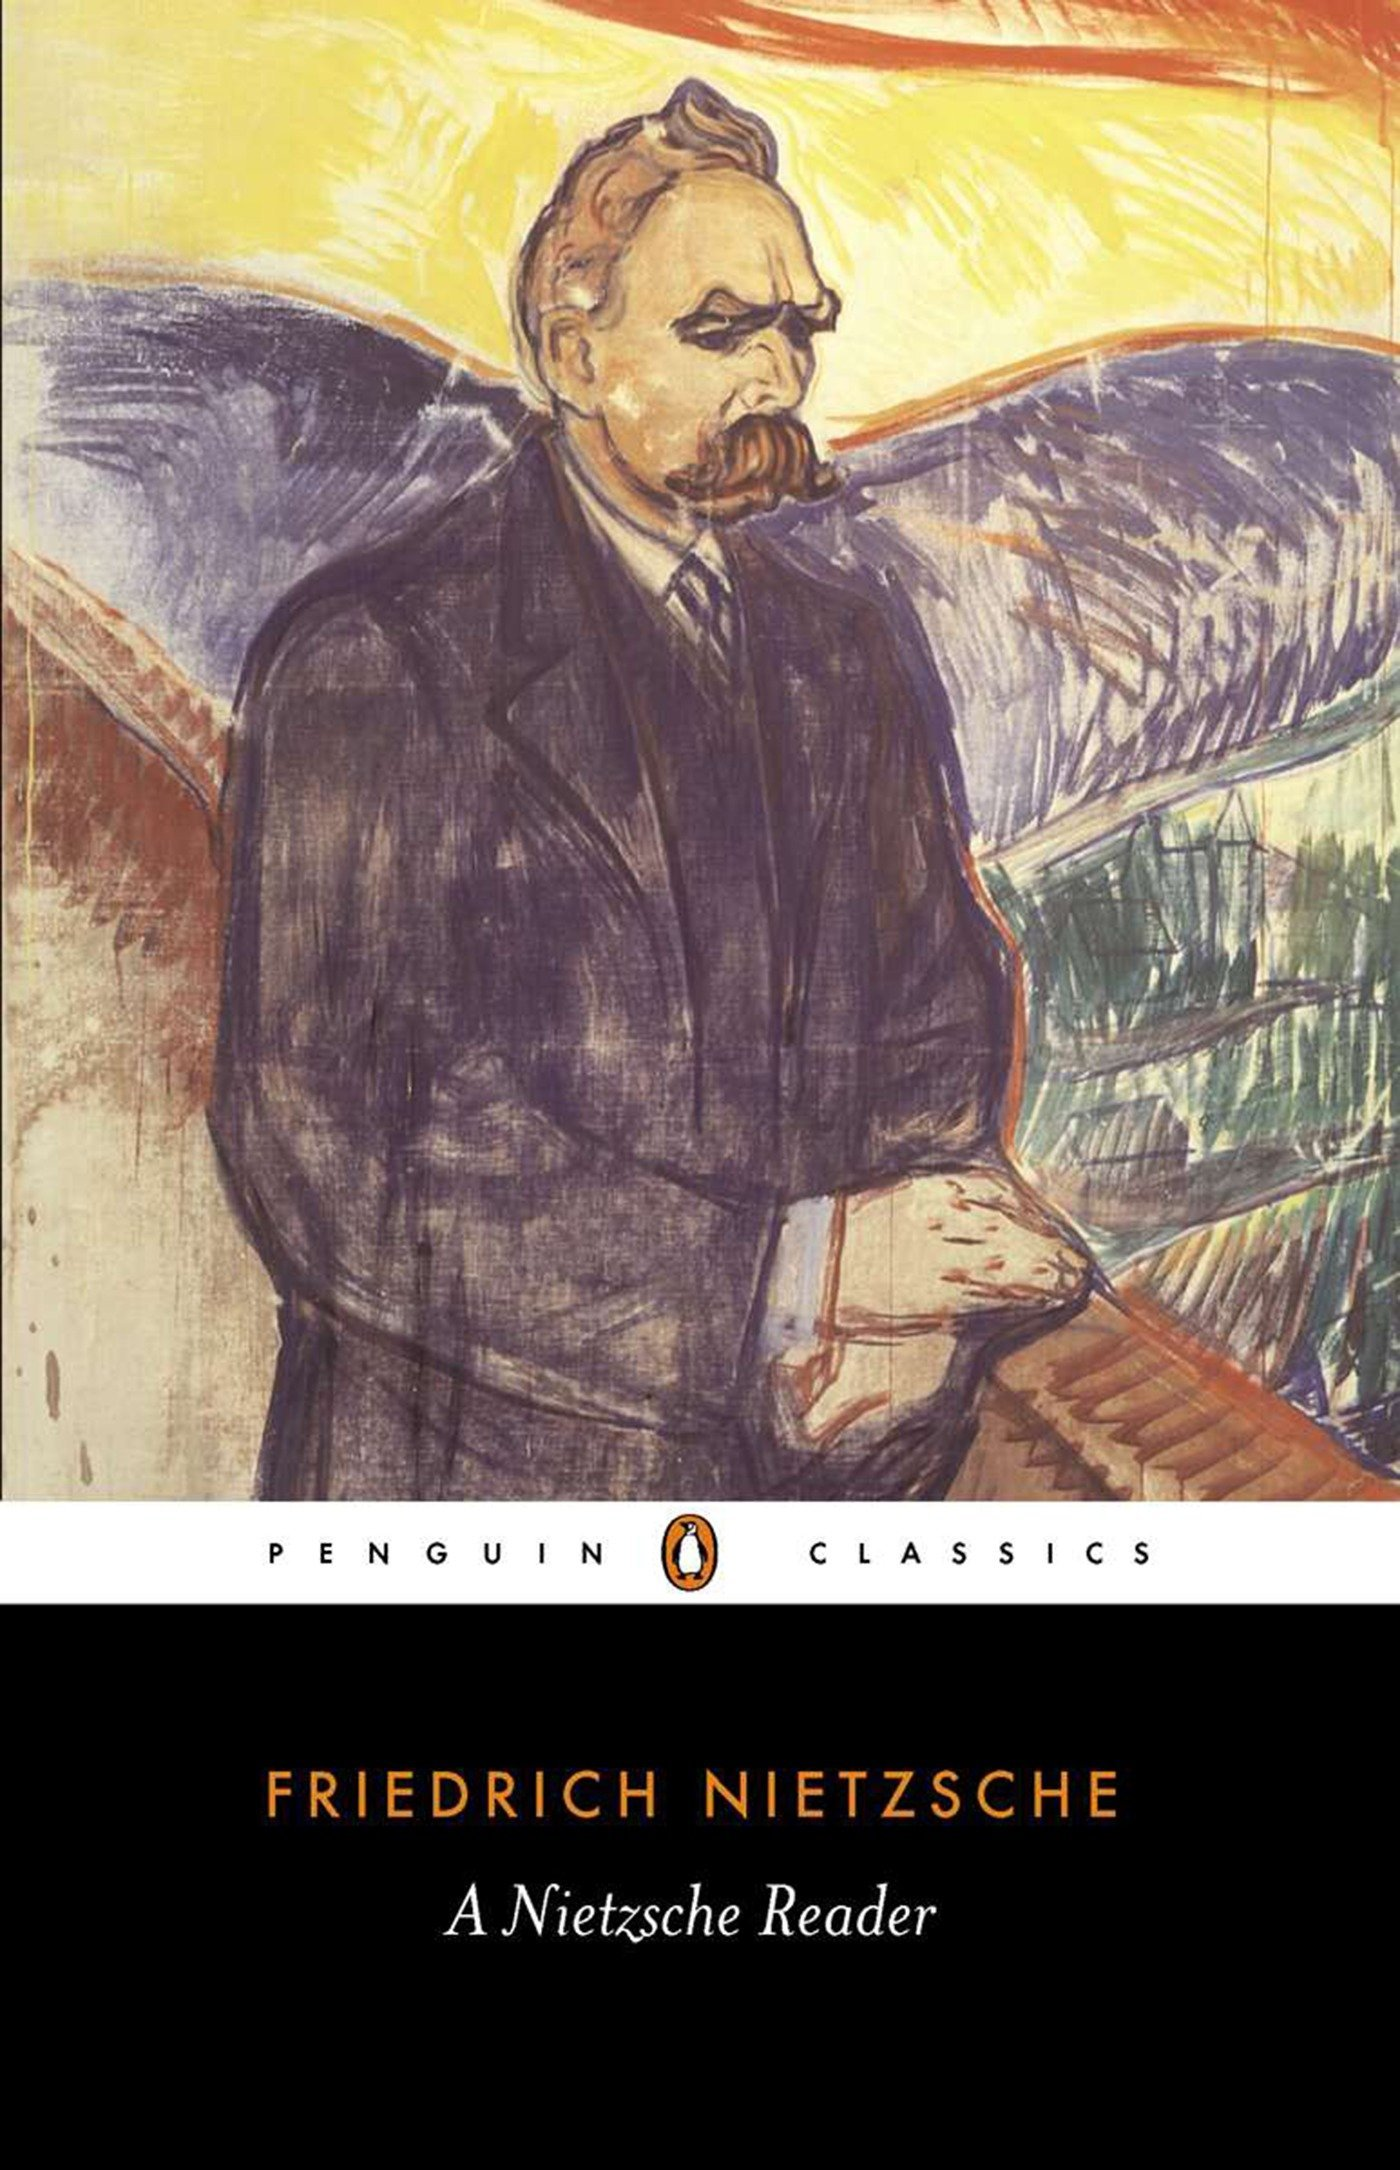 A Nietzsche Reader (Penguin Classics): Friedrich Nietzsche, R. J.  Hollingdale: 9780140443295: Amazon.com: Books